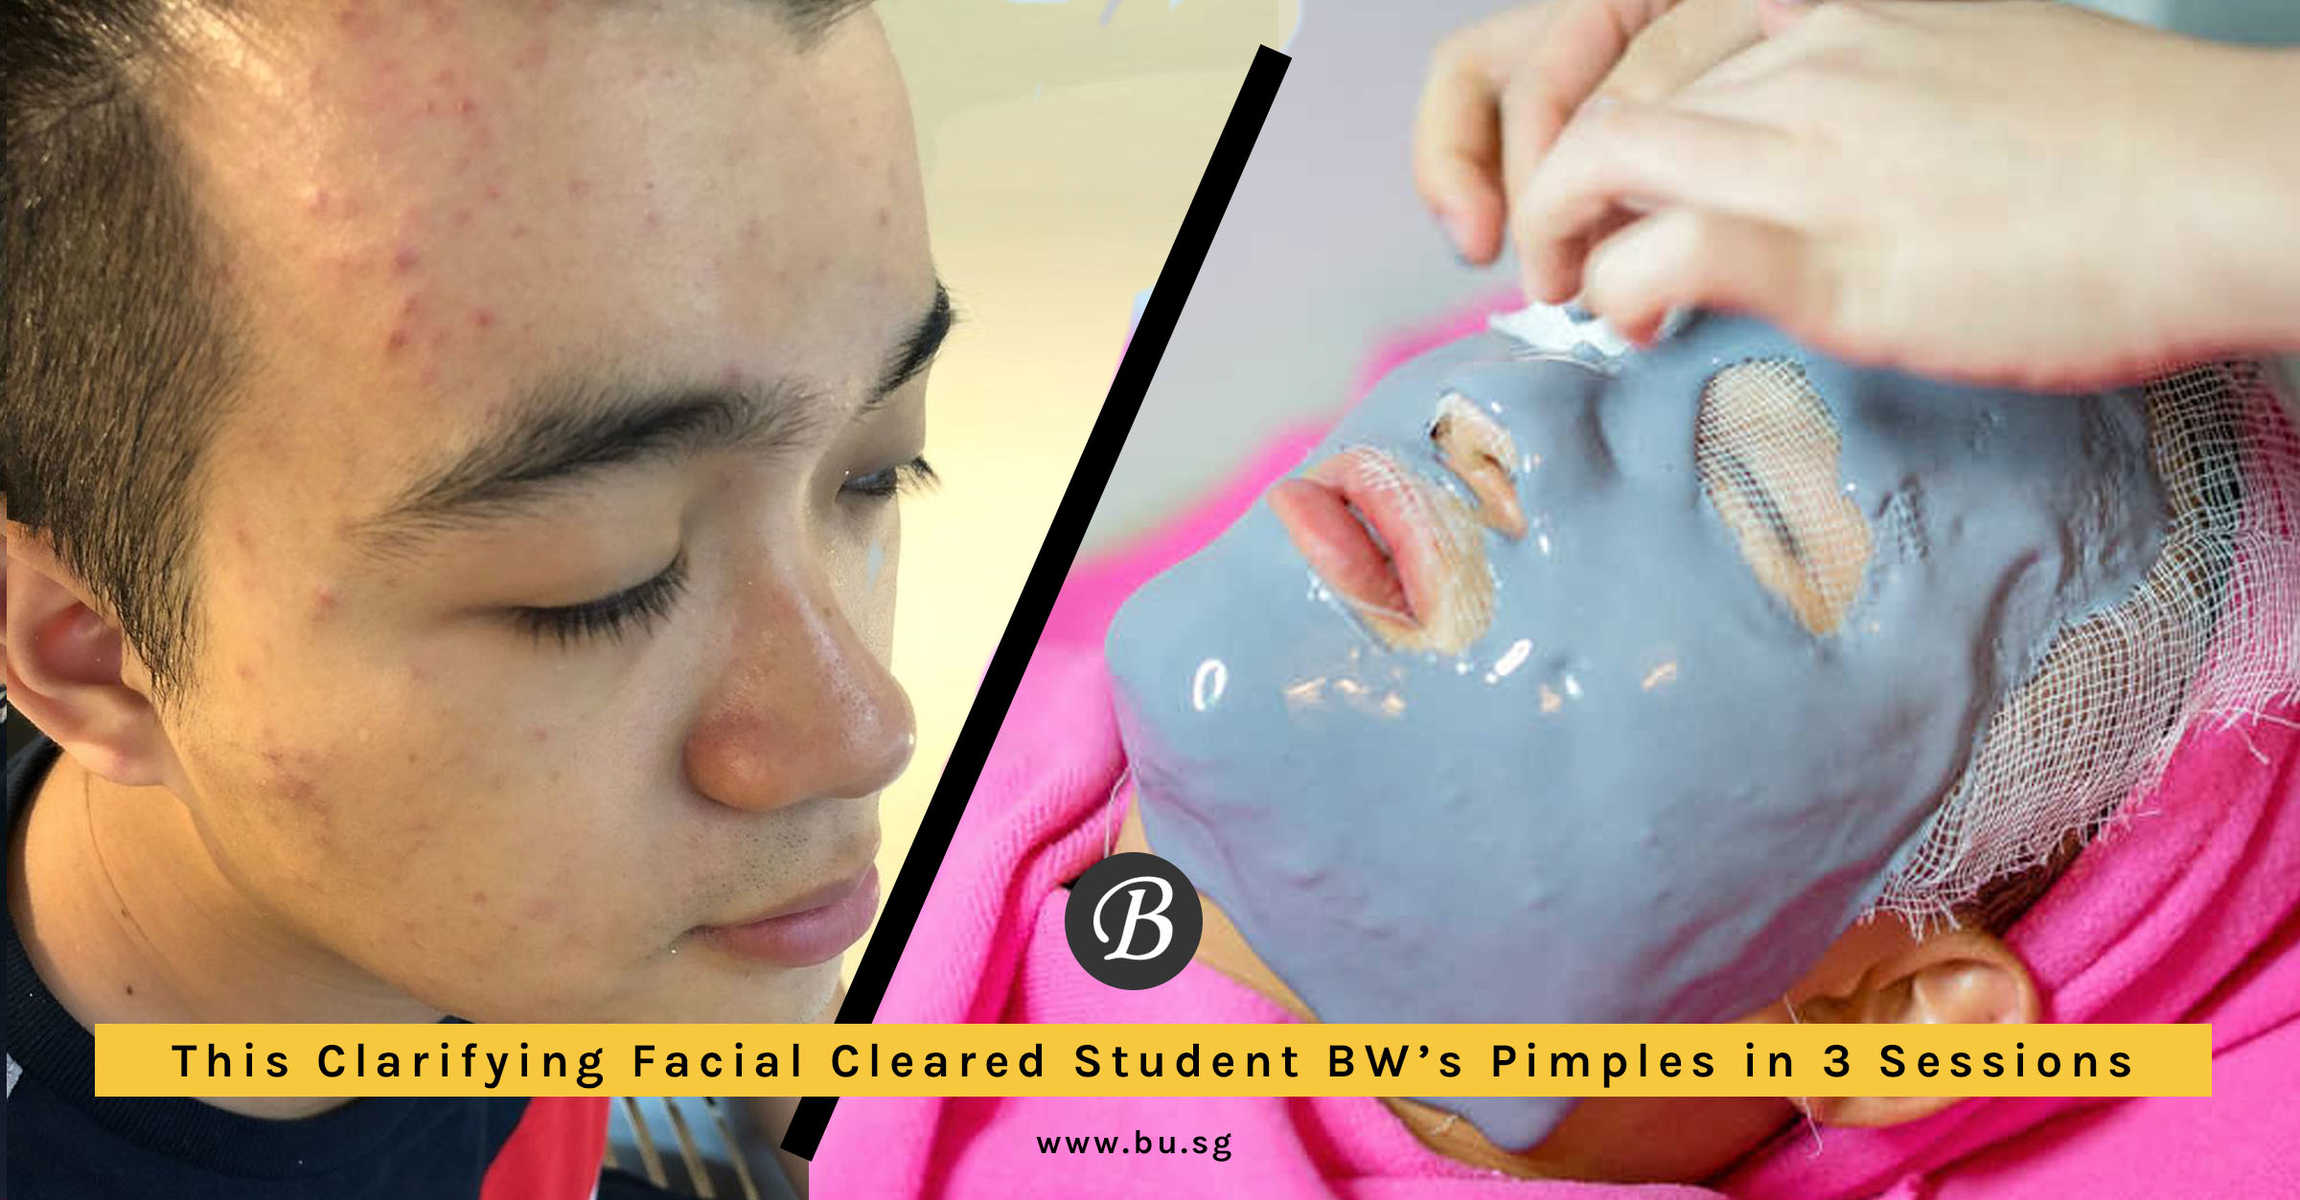 Student BW Sees an Improvement in Acne After Going for Clarifying Facial at Apple Queen Beauty